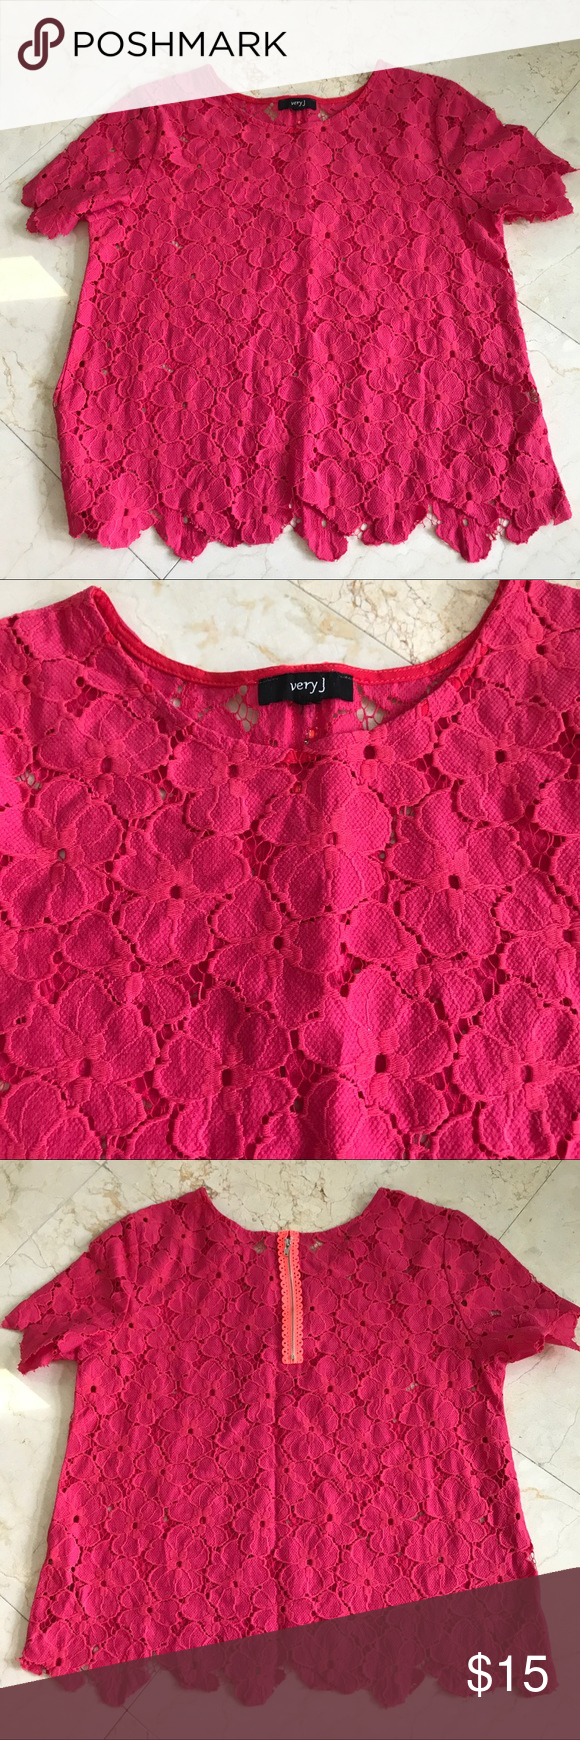 Hot Pink Floral Lace Shirt EUC! Worn only once. The perfect shirt for summer! Hot pink cutout lace with a floral design and bright orange back zipper. Purchased from an online boutique. Very J Tops Blouses